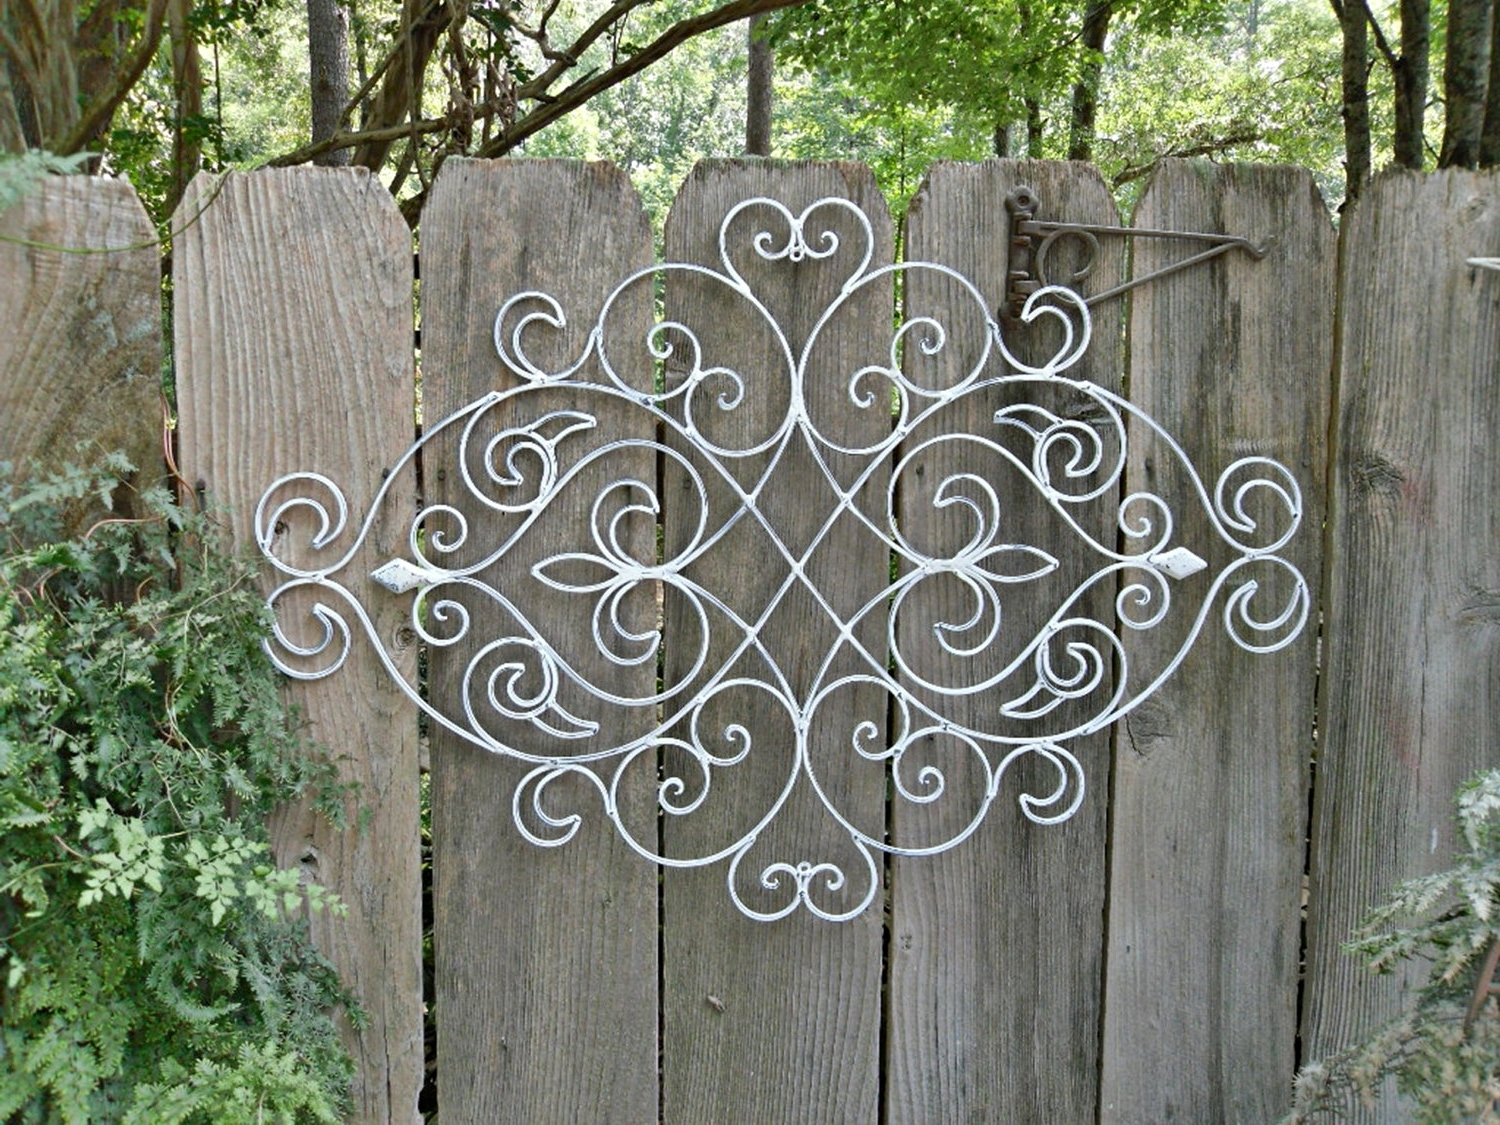 15 Best Collection Of Iron Gate Wall Art